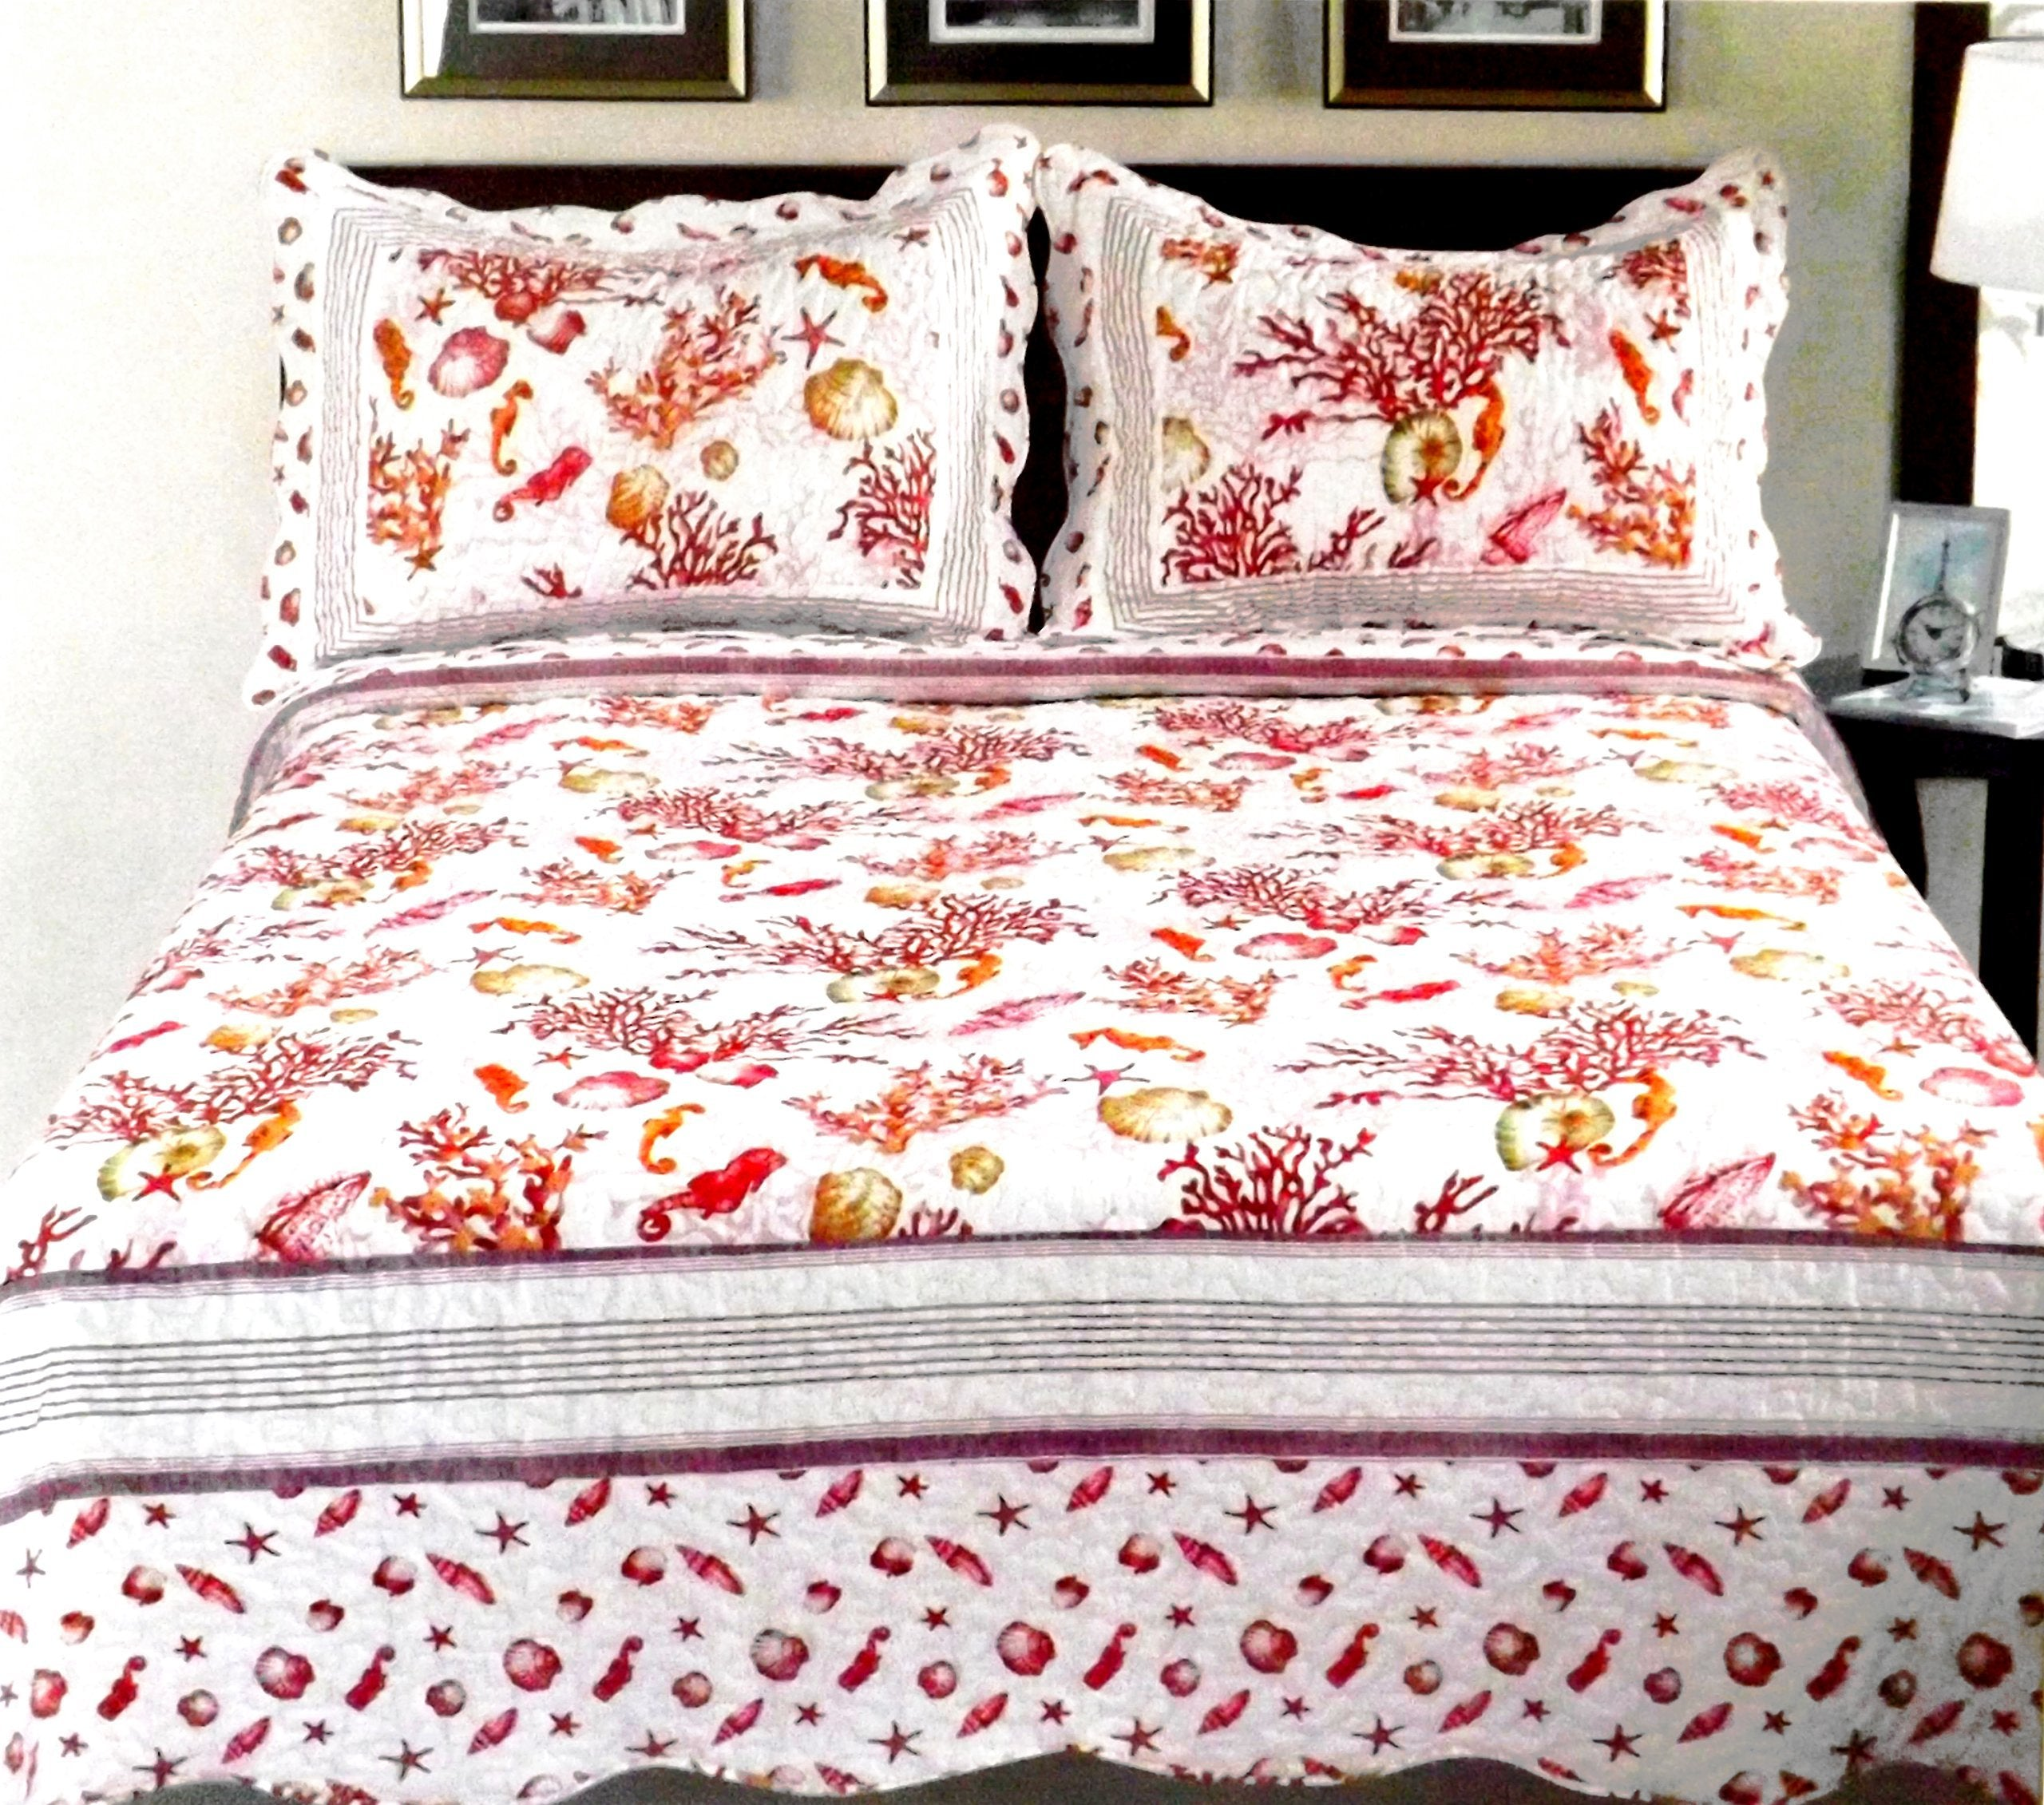 Couture Home Collection Luxury Multi-Print Design